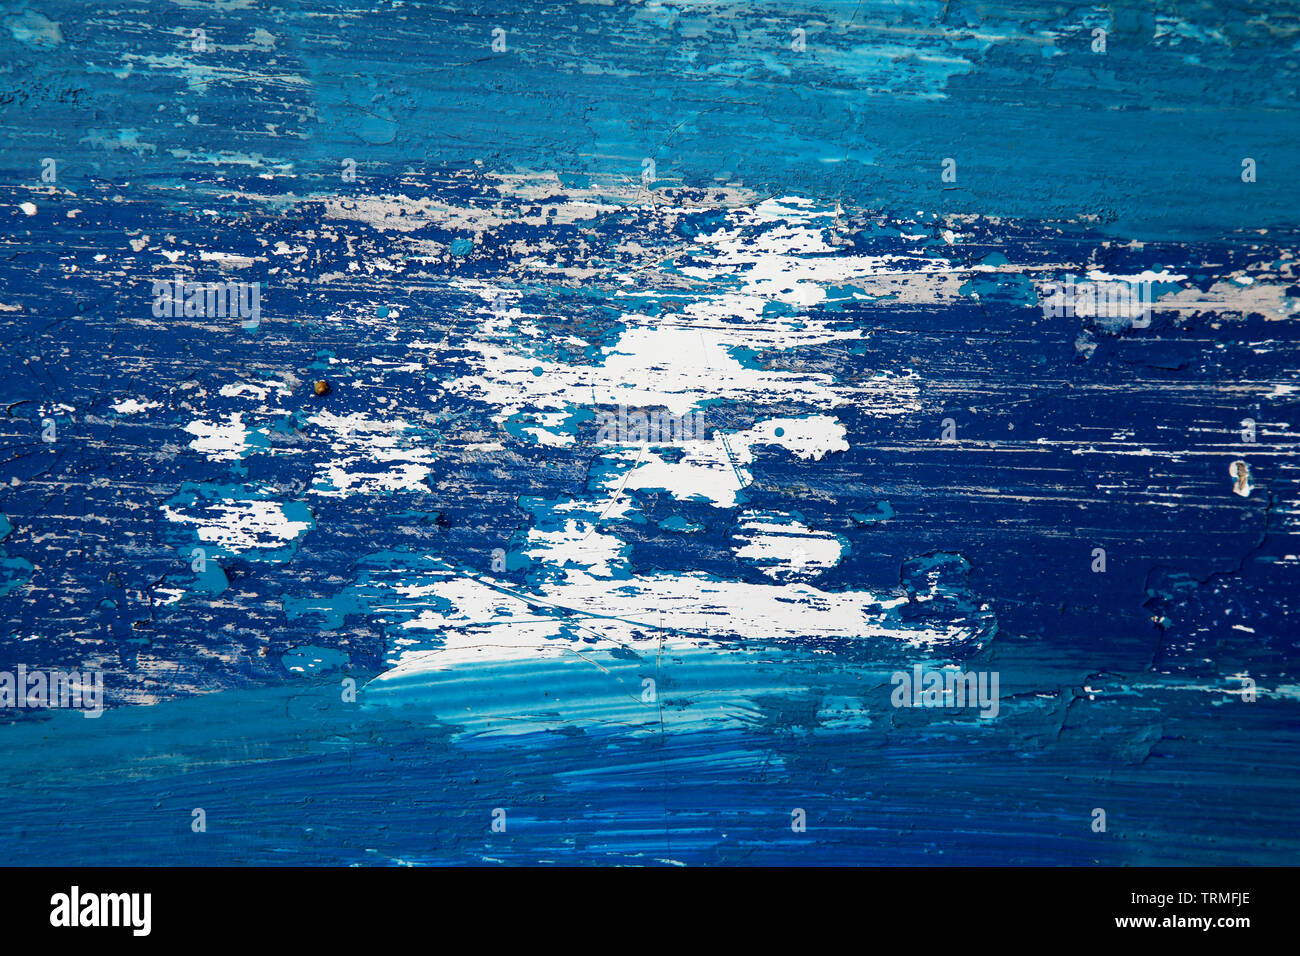 Boat Hull, Keel, Abstract, Paint, Weathered, Scratched, Coast, Vessel, Dirt, Beach, Southend, Essex © Clarissa Debenham / Alamy Stock Photo